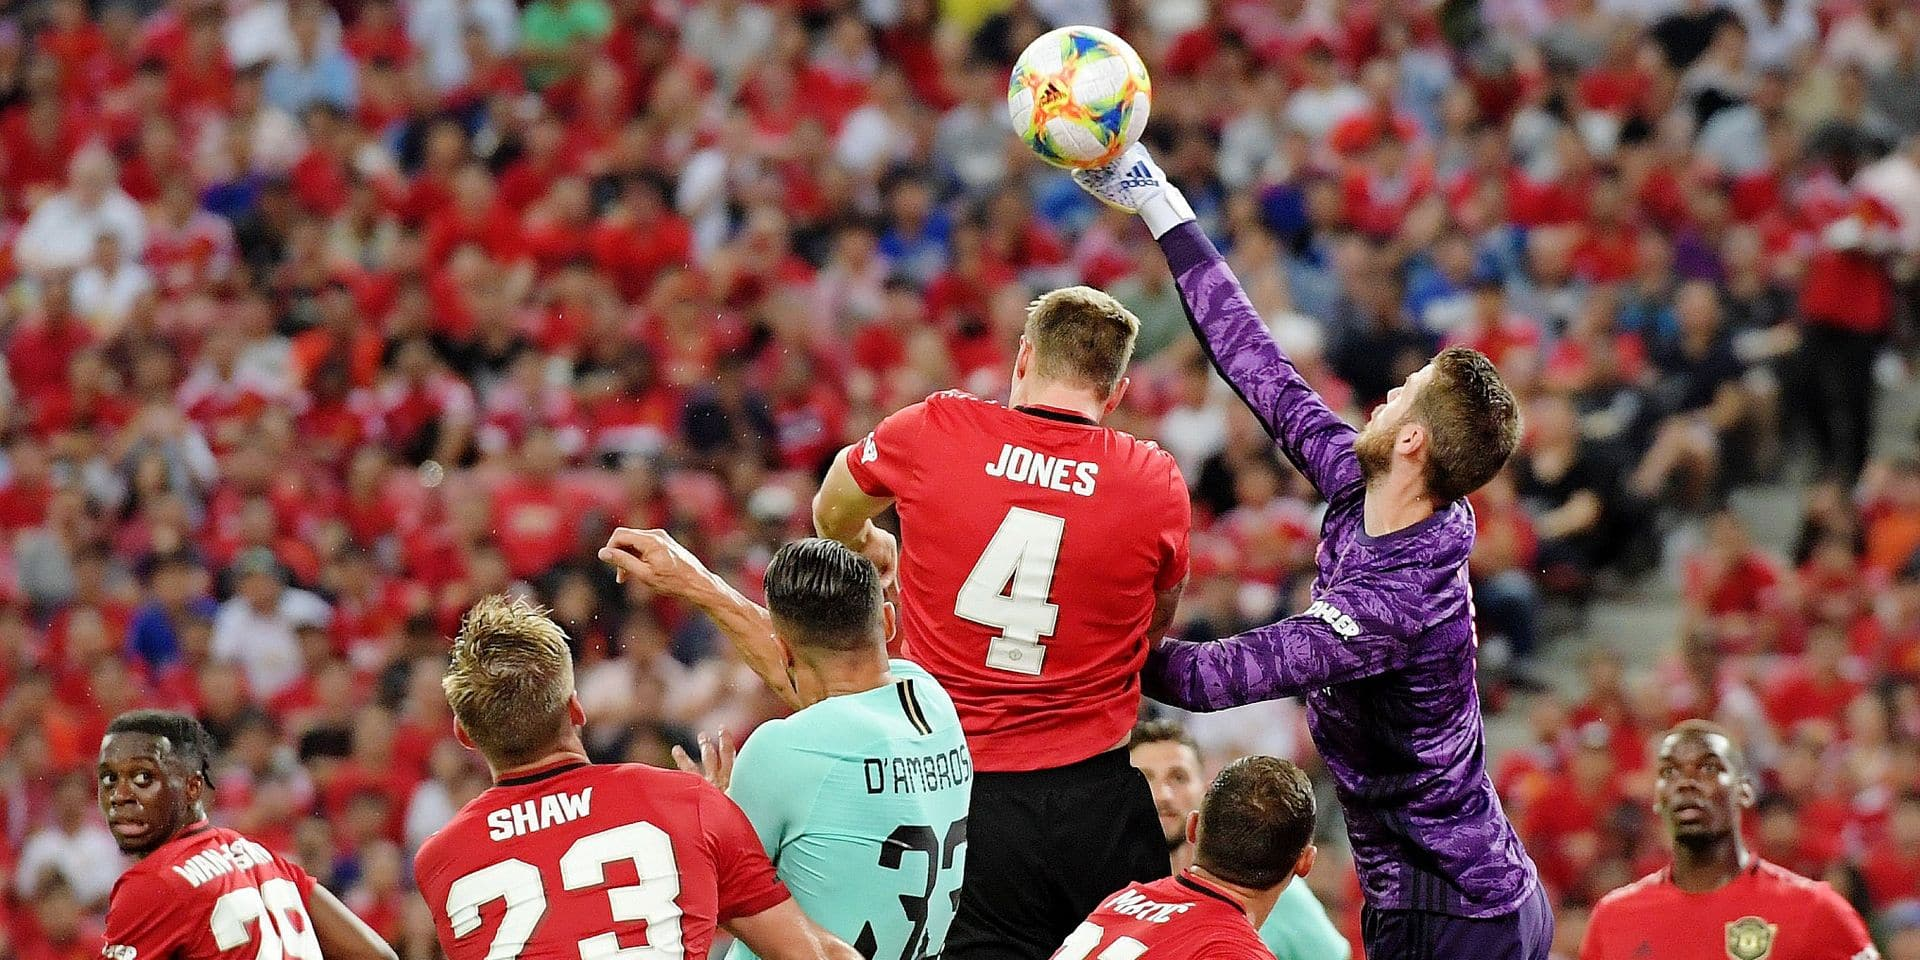 Manchester United's David de Gea (2nd R) clears the ball during the International Champions Cup football match between Manchester United and Inter Milan in Singapore on July 20, 2019. (Photo by Roslan RAHMAN / AFP)